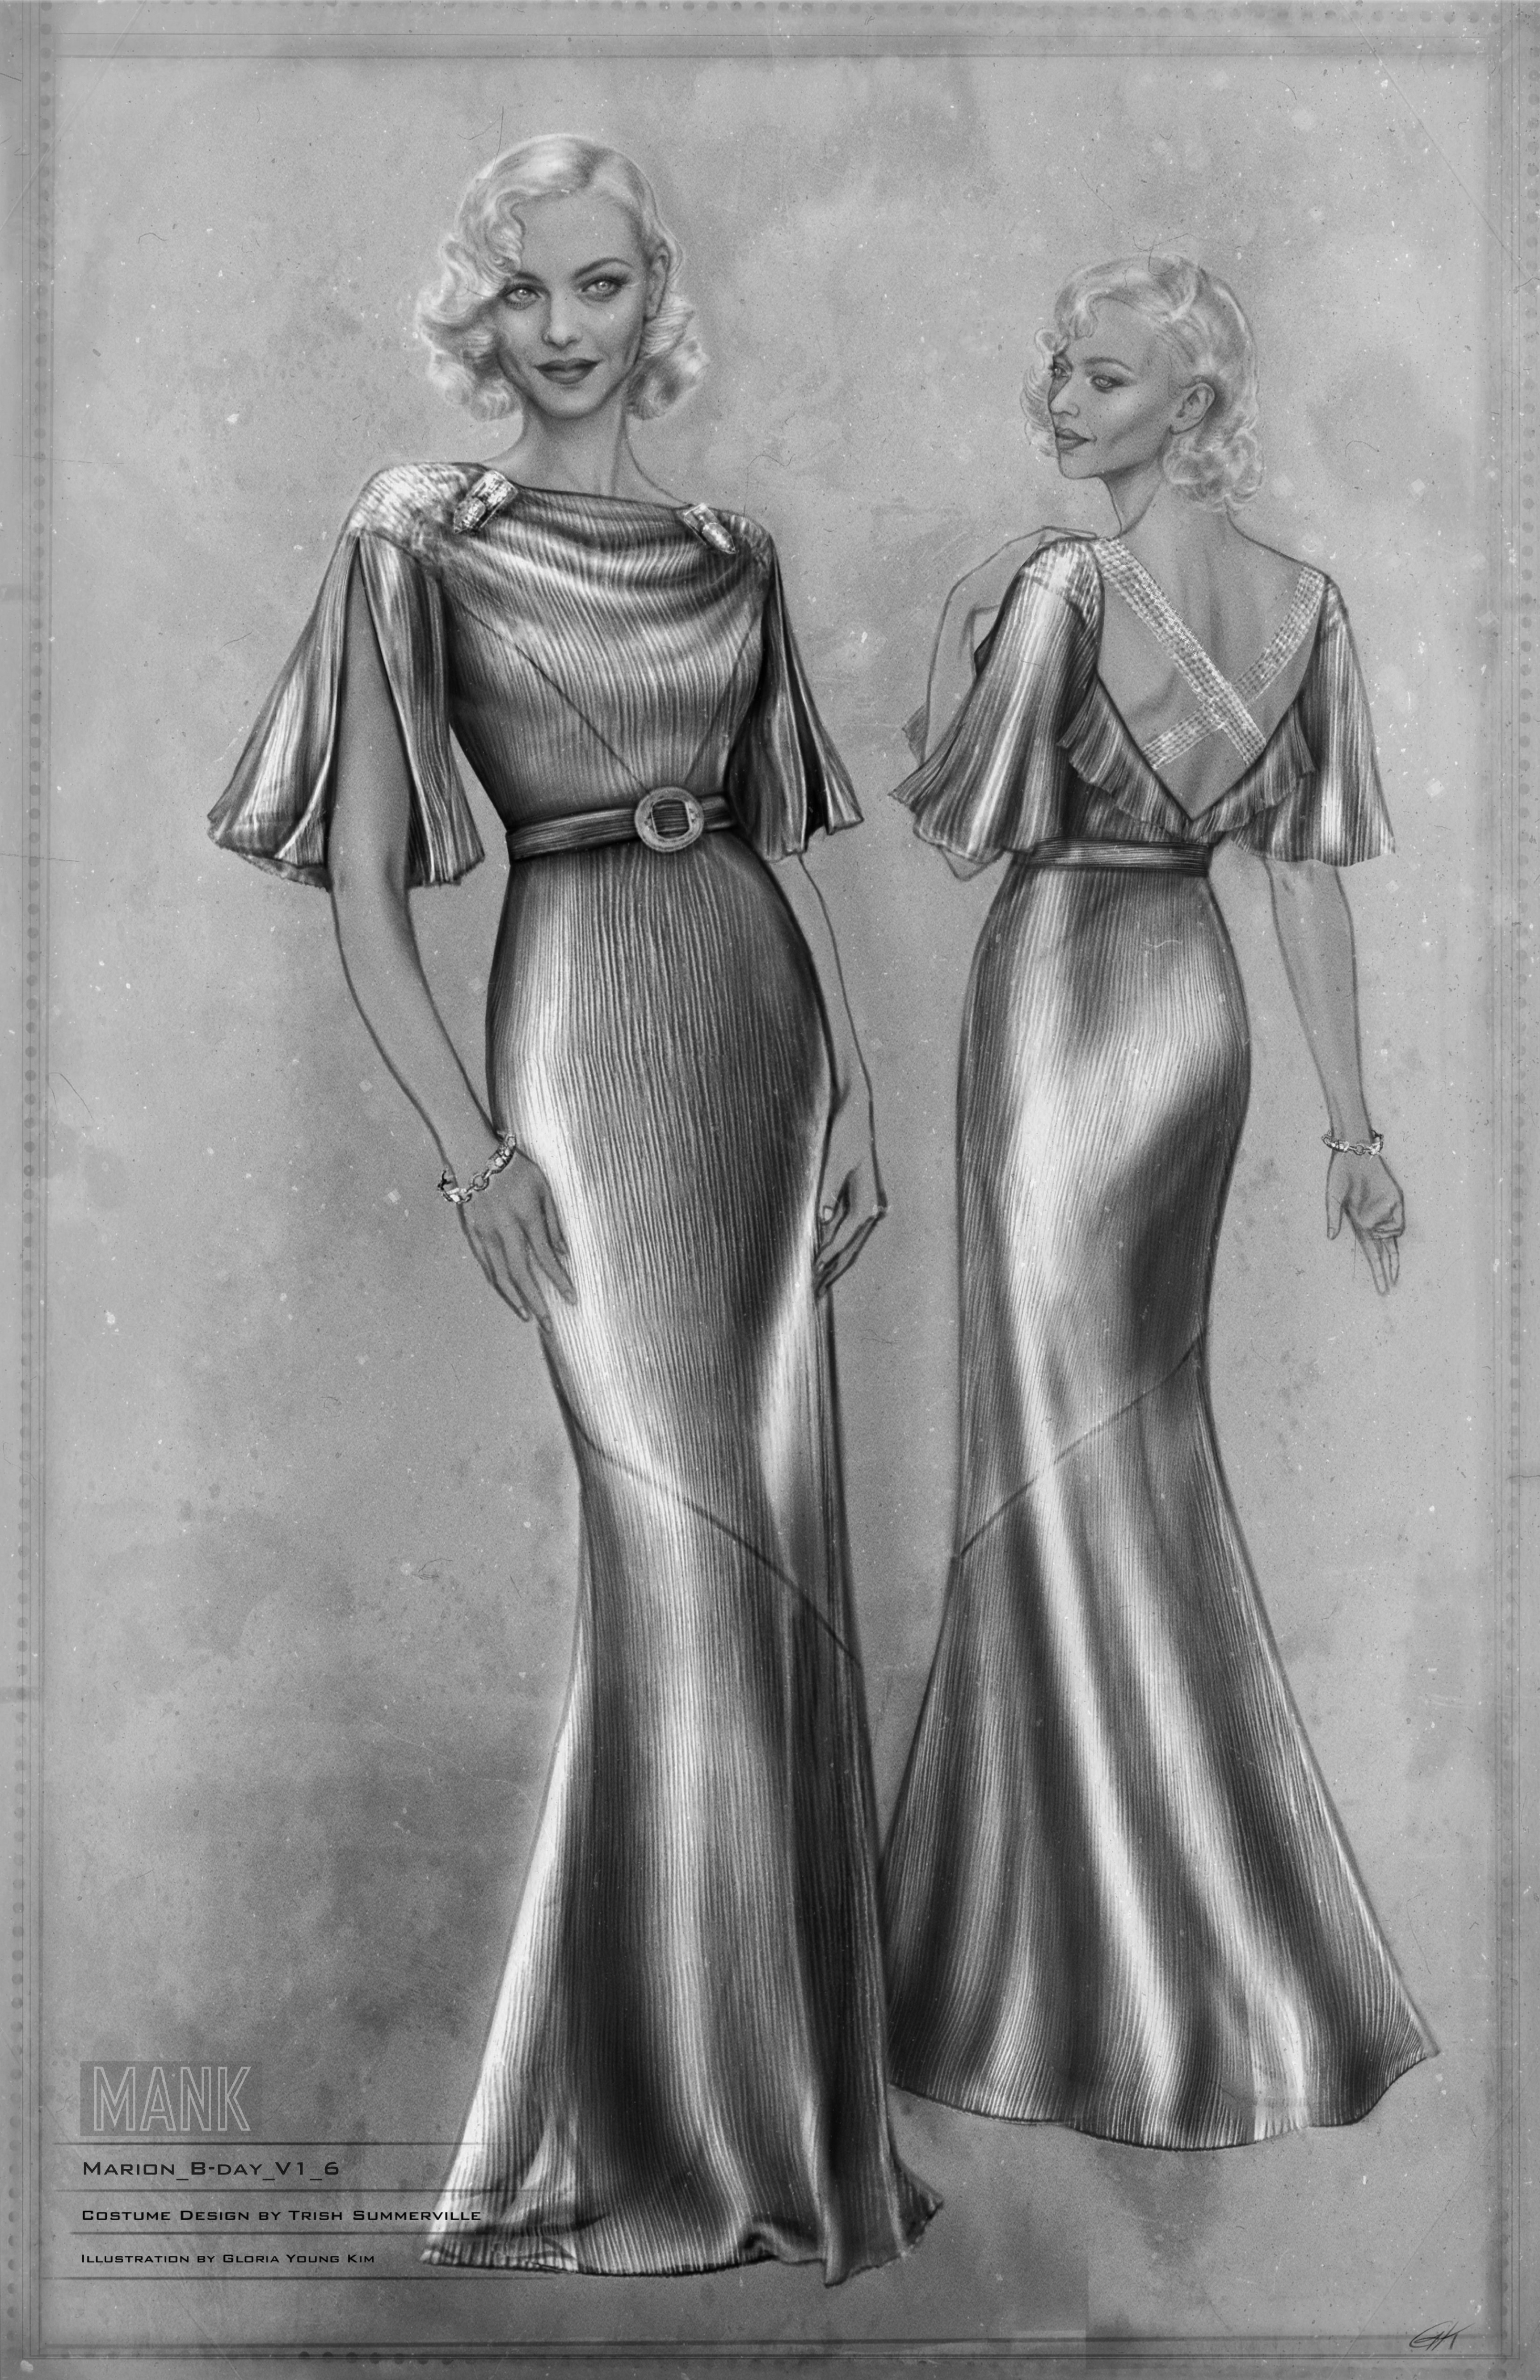 Black-and-white costume sketch of Marion Davies in the gold lamé gown. We see her from two angles, revealing a criss-cross detail over the oufit's back. The sketch highlights how the dress catches the light, and the liquid quality it evokes even in stillness.